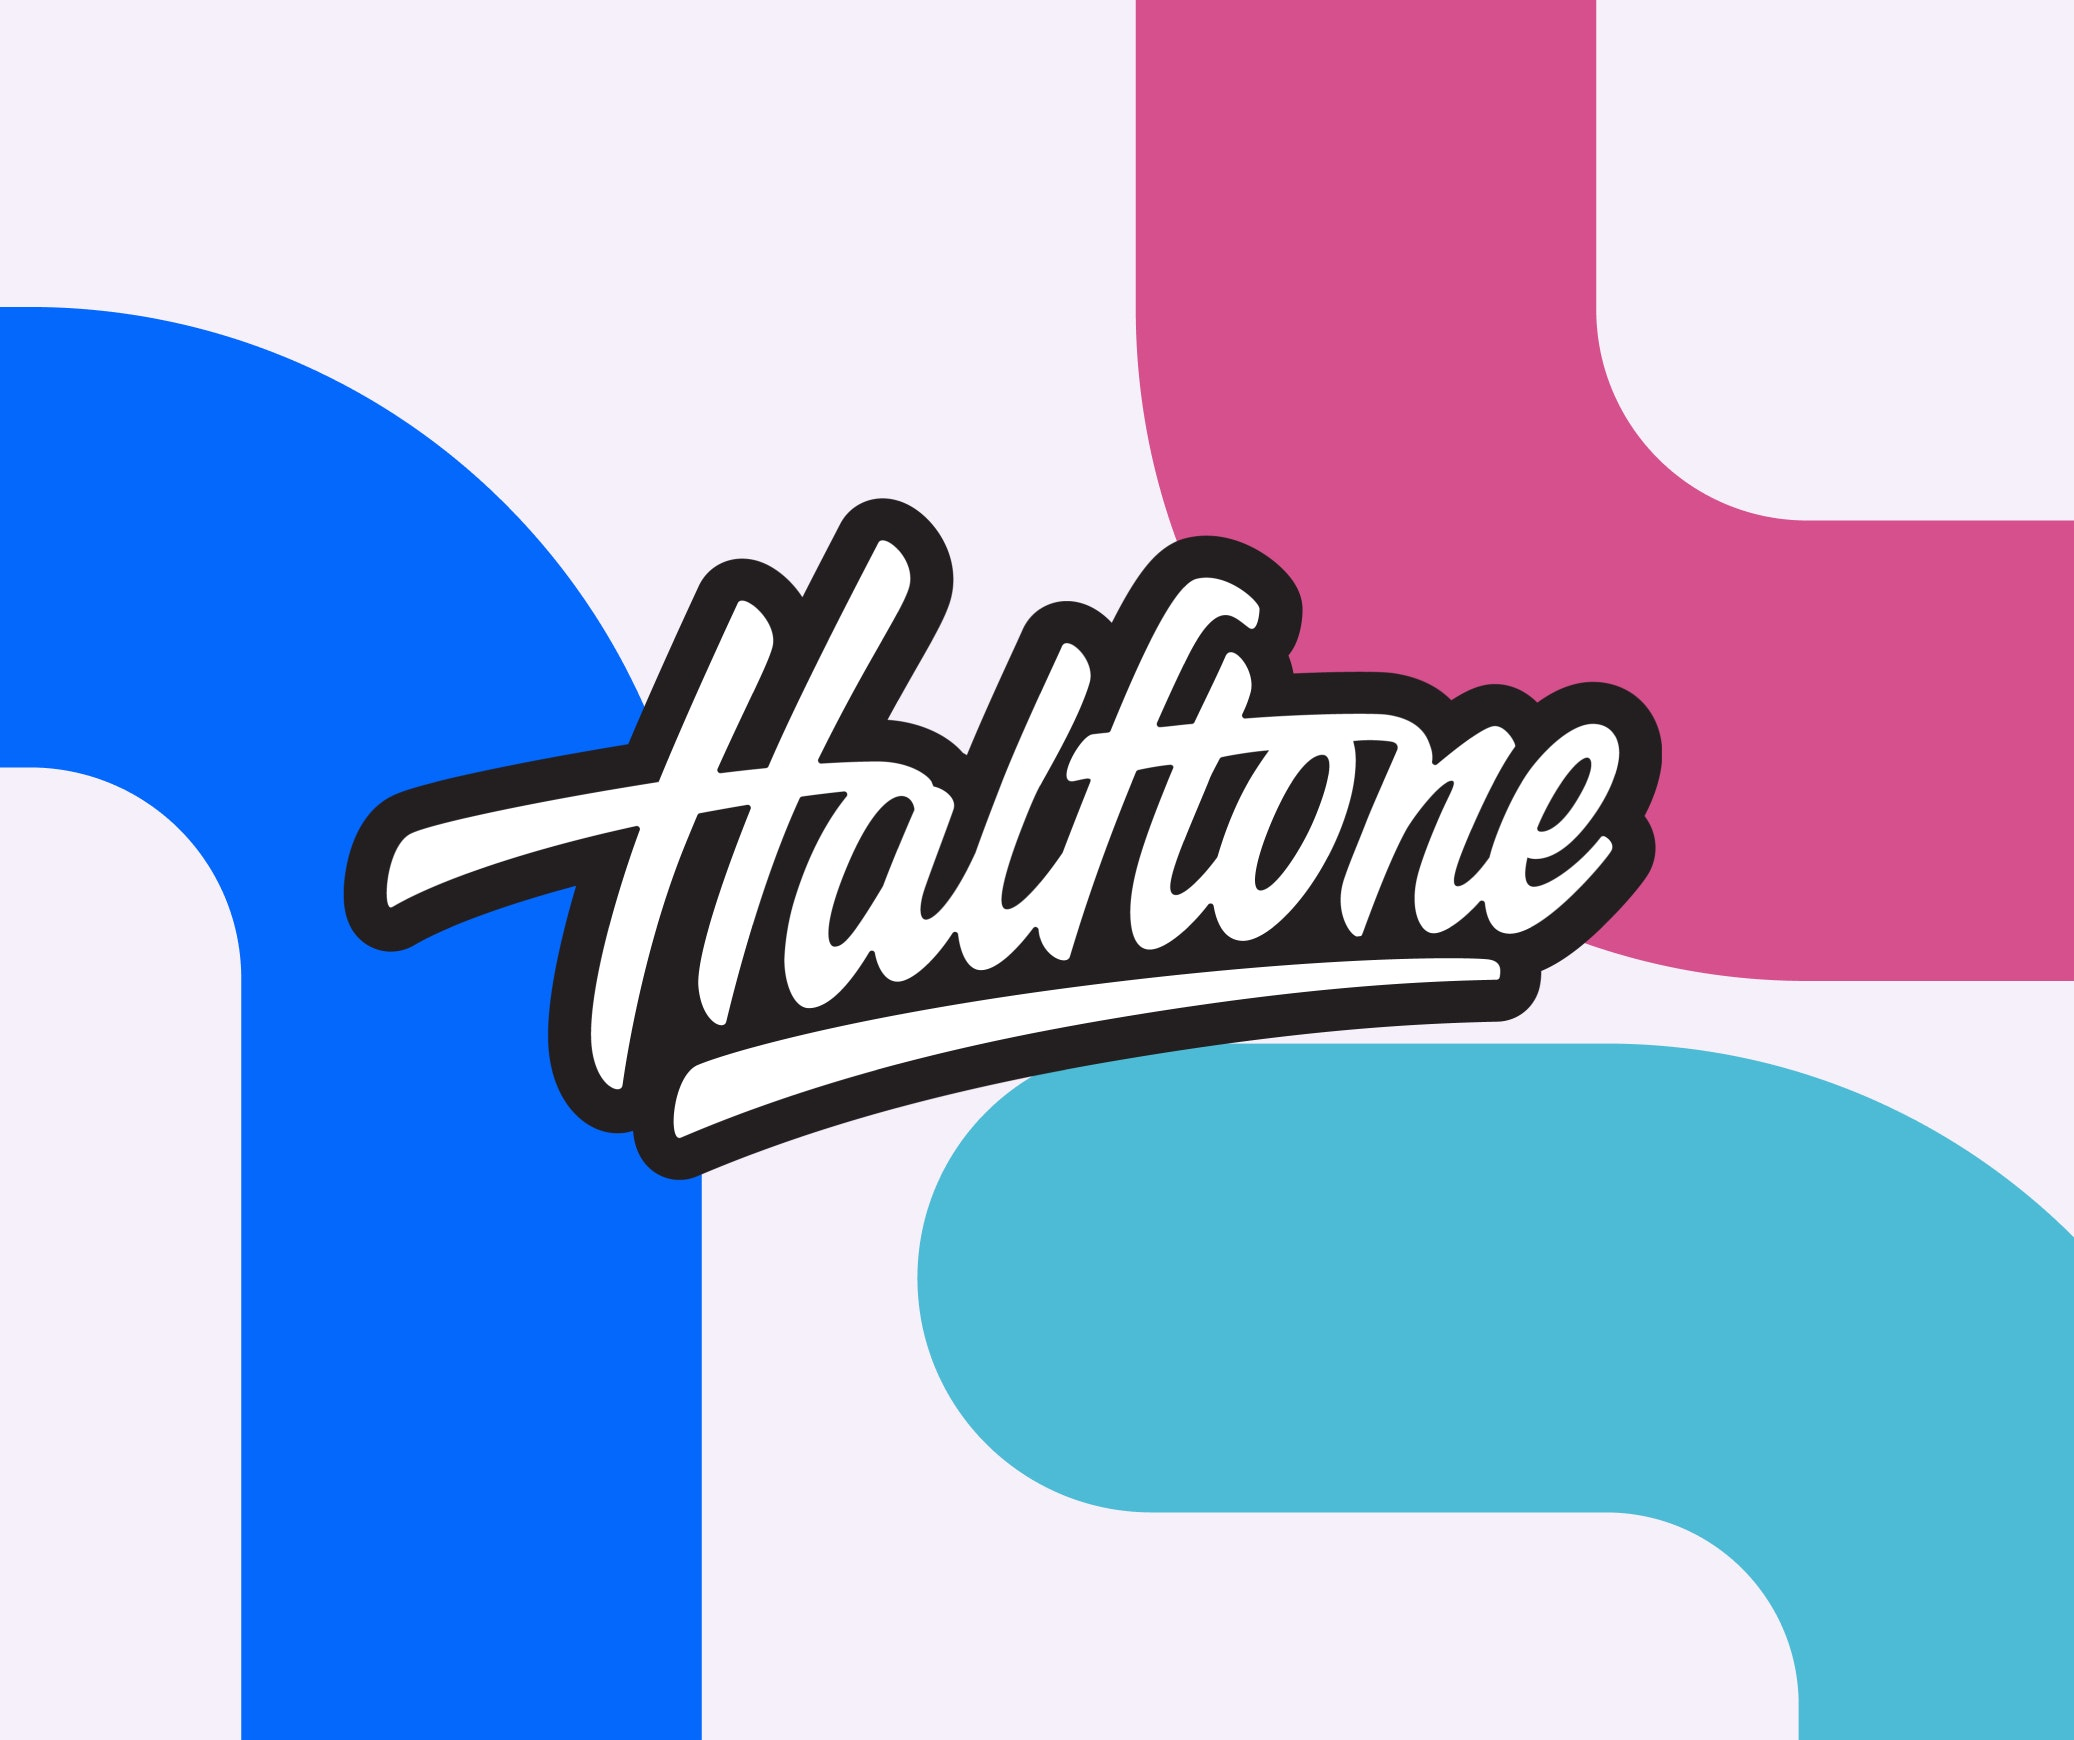 Halftone Digital measures and improves usability with Maze Reports